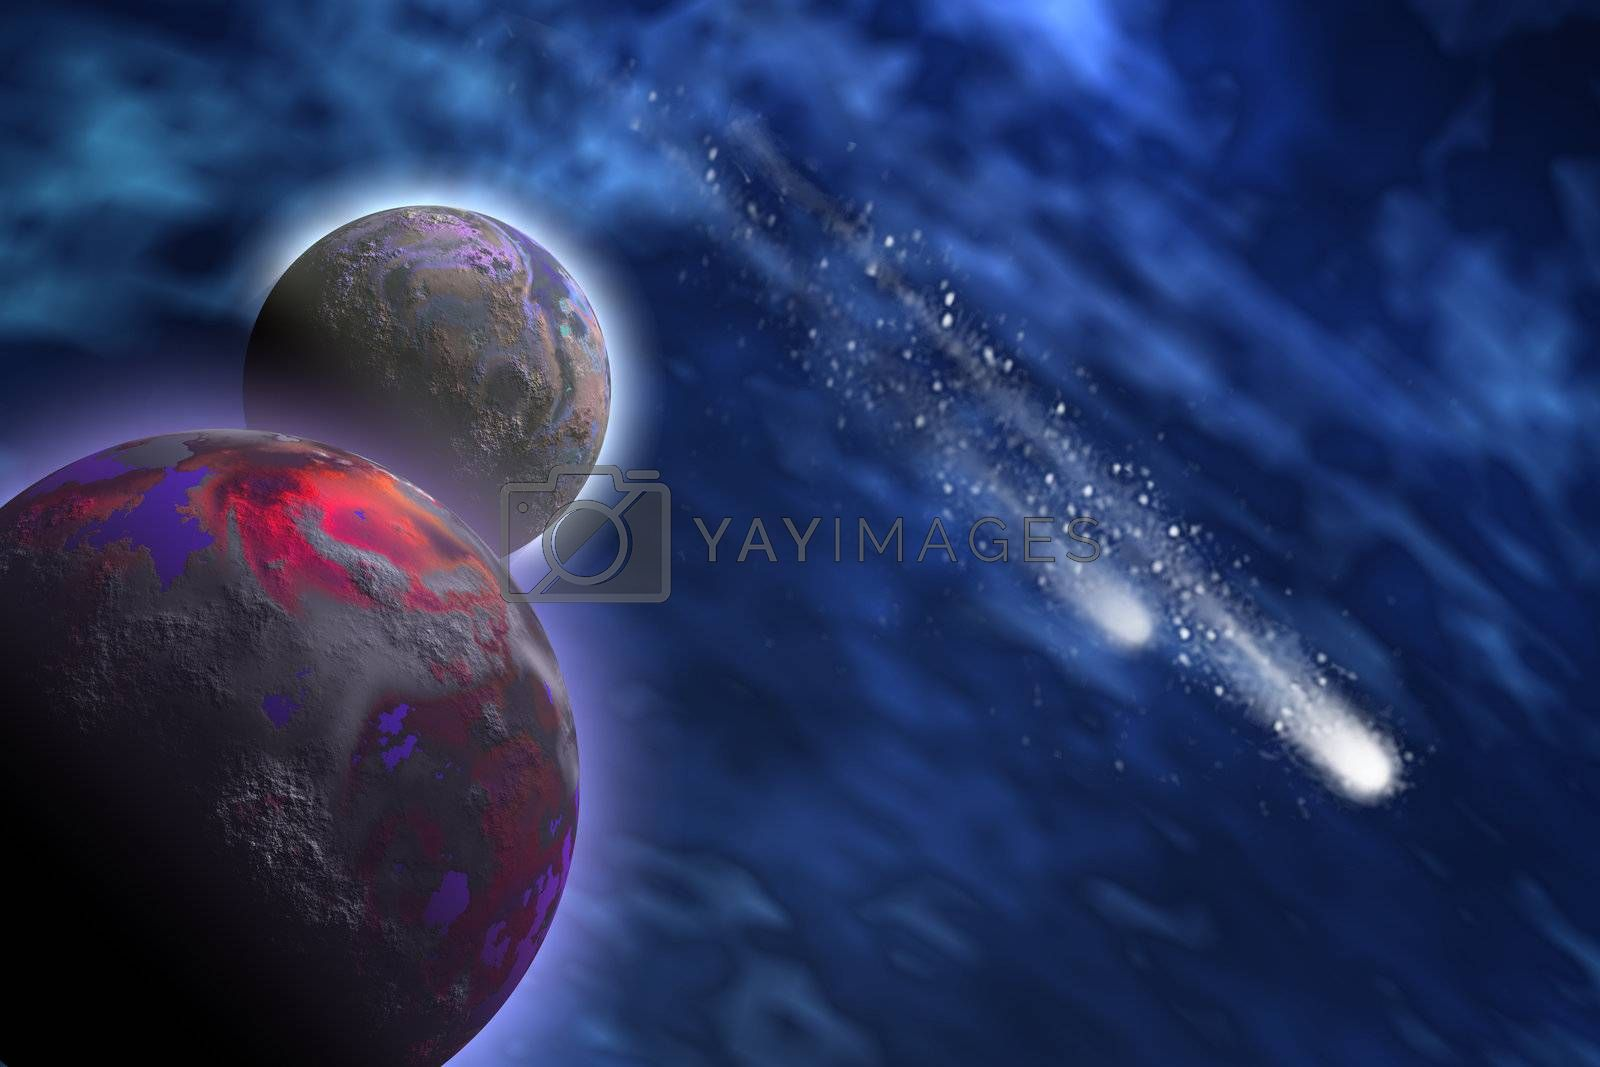 Two bright comets shoot past a planet and its moon.